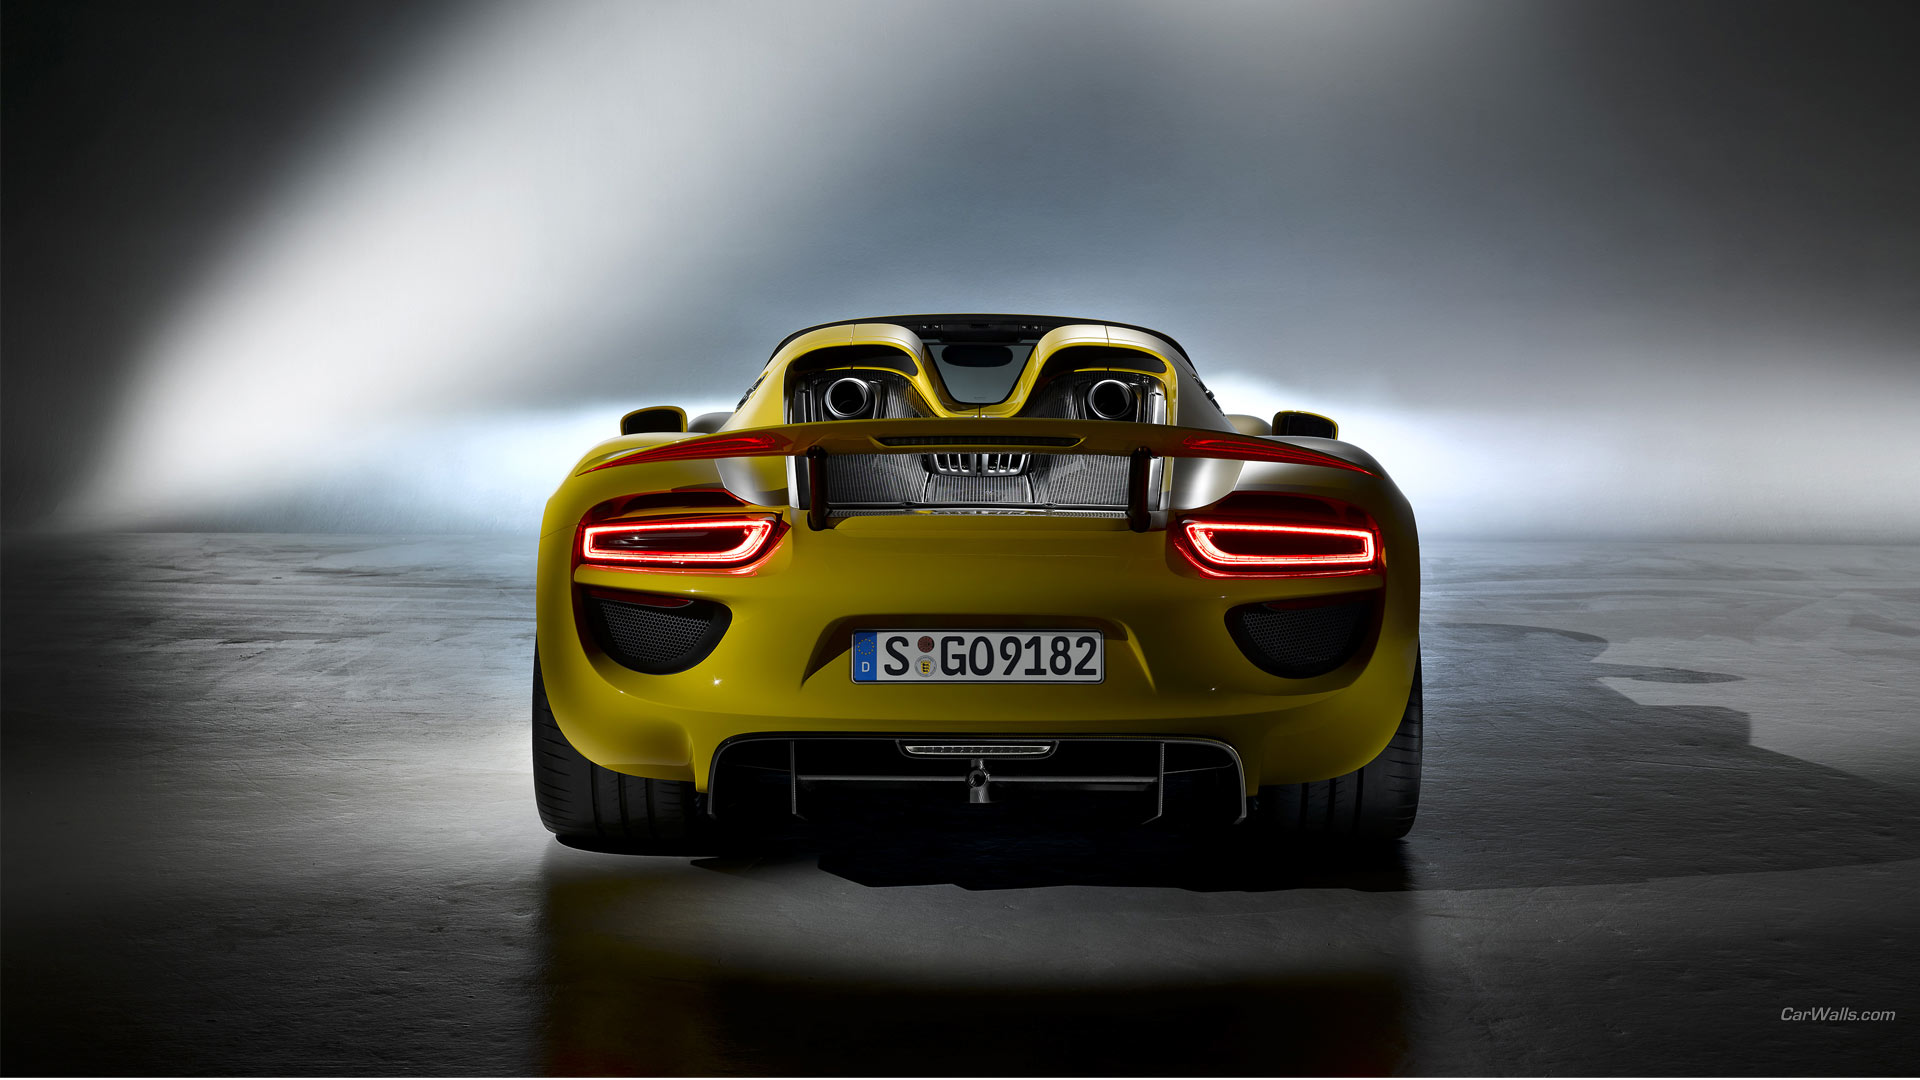 vehicles porsche 918 spyder wallpaper - Porsche 918 Spyder Wallpaper